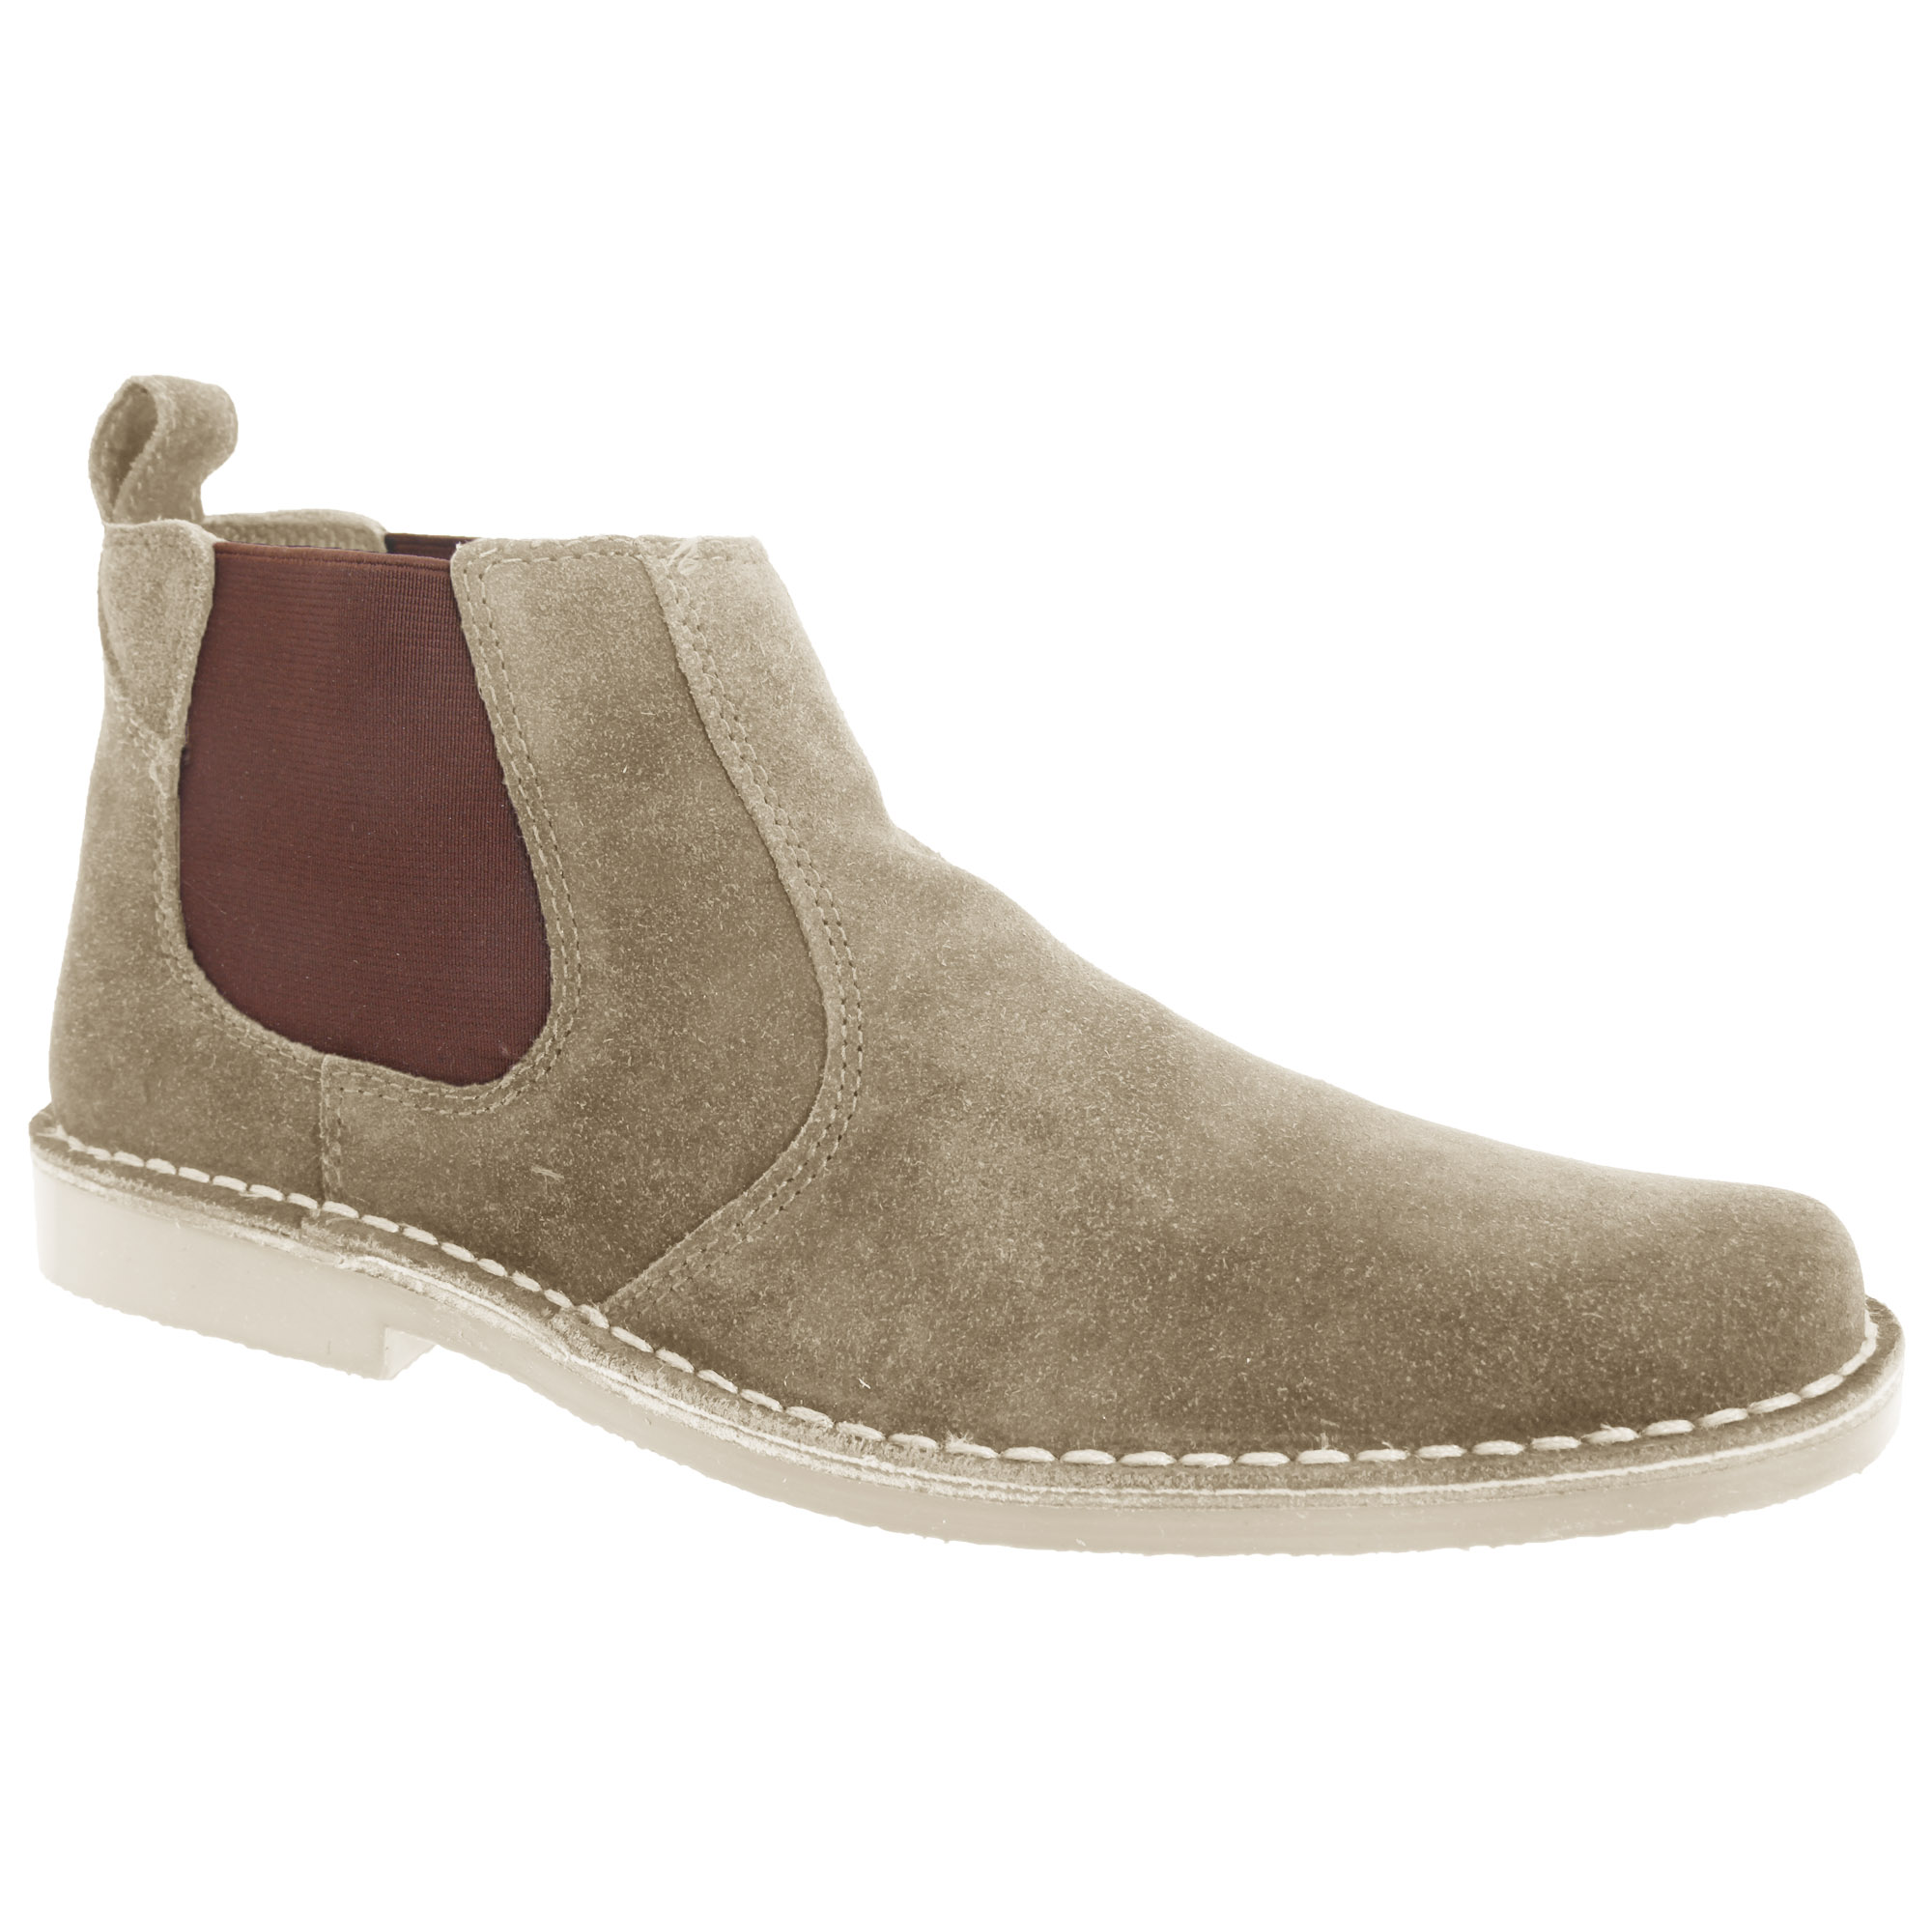 Roamers Mens Real Suede Classic Desert Boots (9 UK) (Taupe)